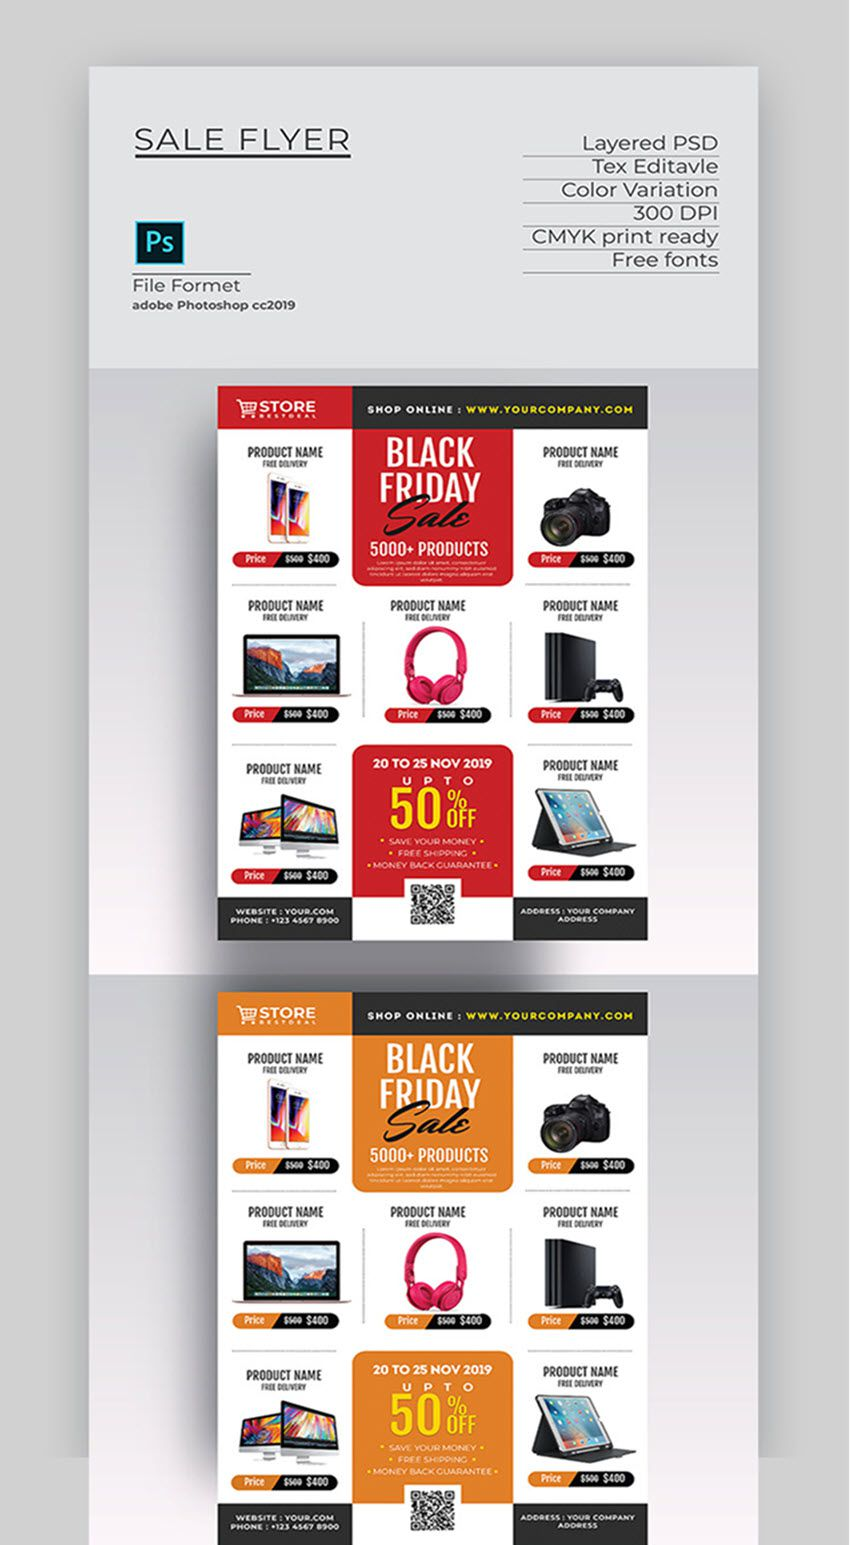 007 Exceptional For Sale Flyer Template Design  Car Ad Microsoft Word HouseFull